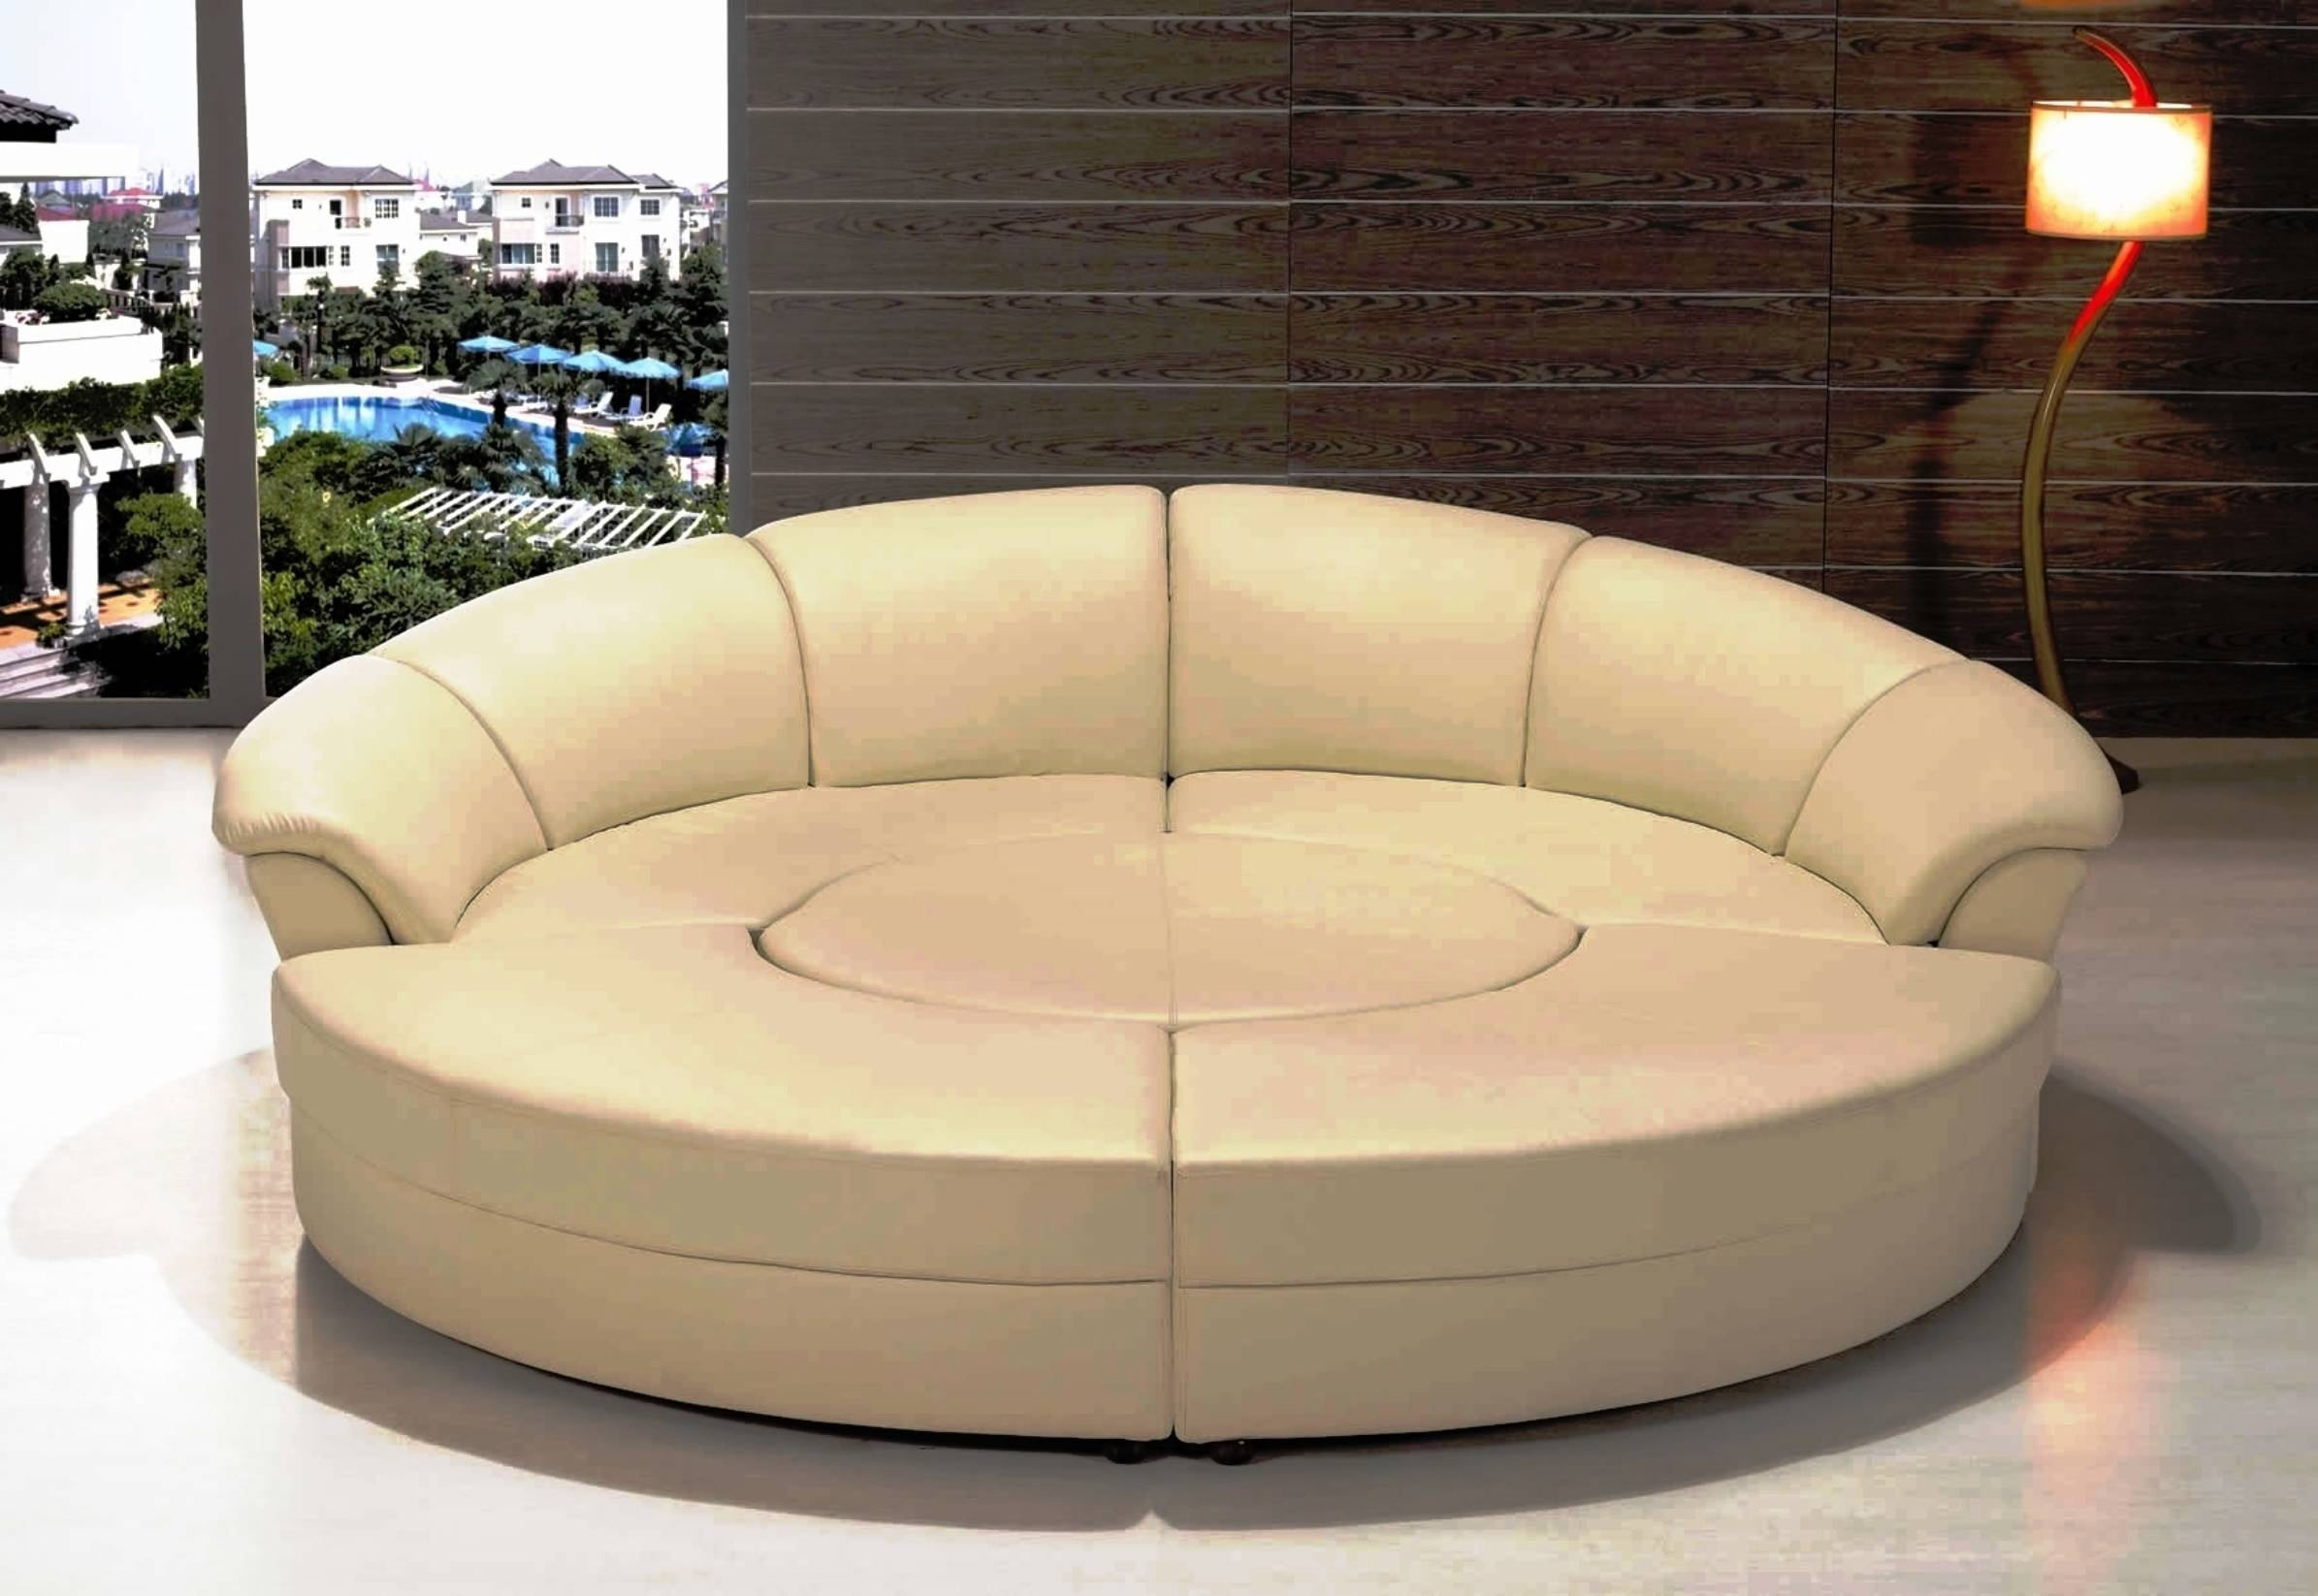 Round Sectional Sofa Bed Round Sectional Sofa Bed - Thesofa regarding Round Sectional Sofa Bed (Image 19 of 25)